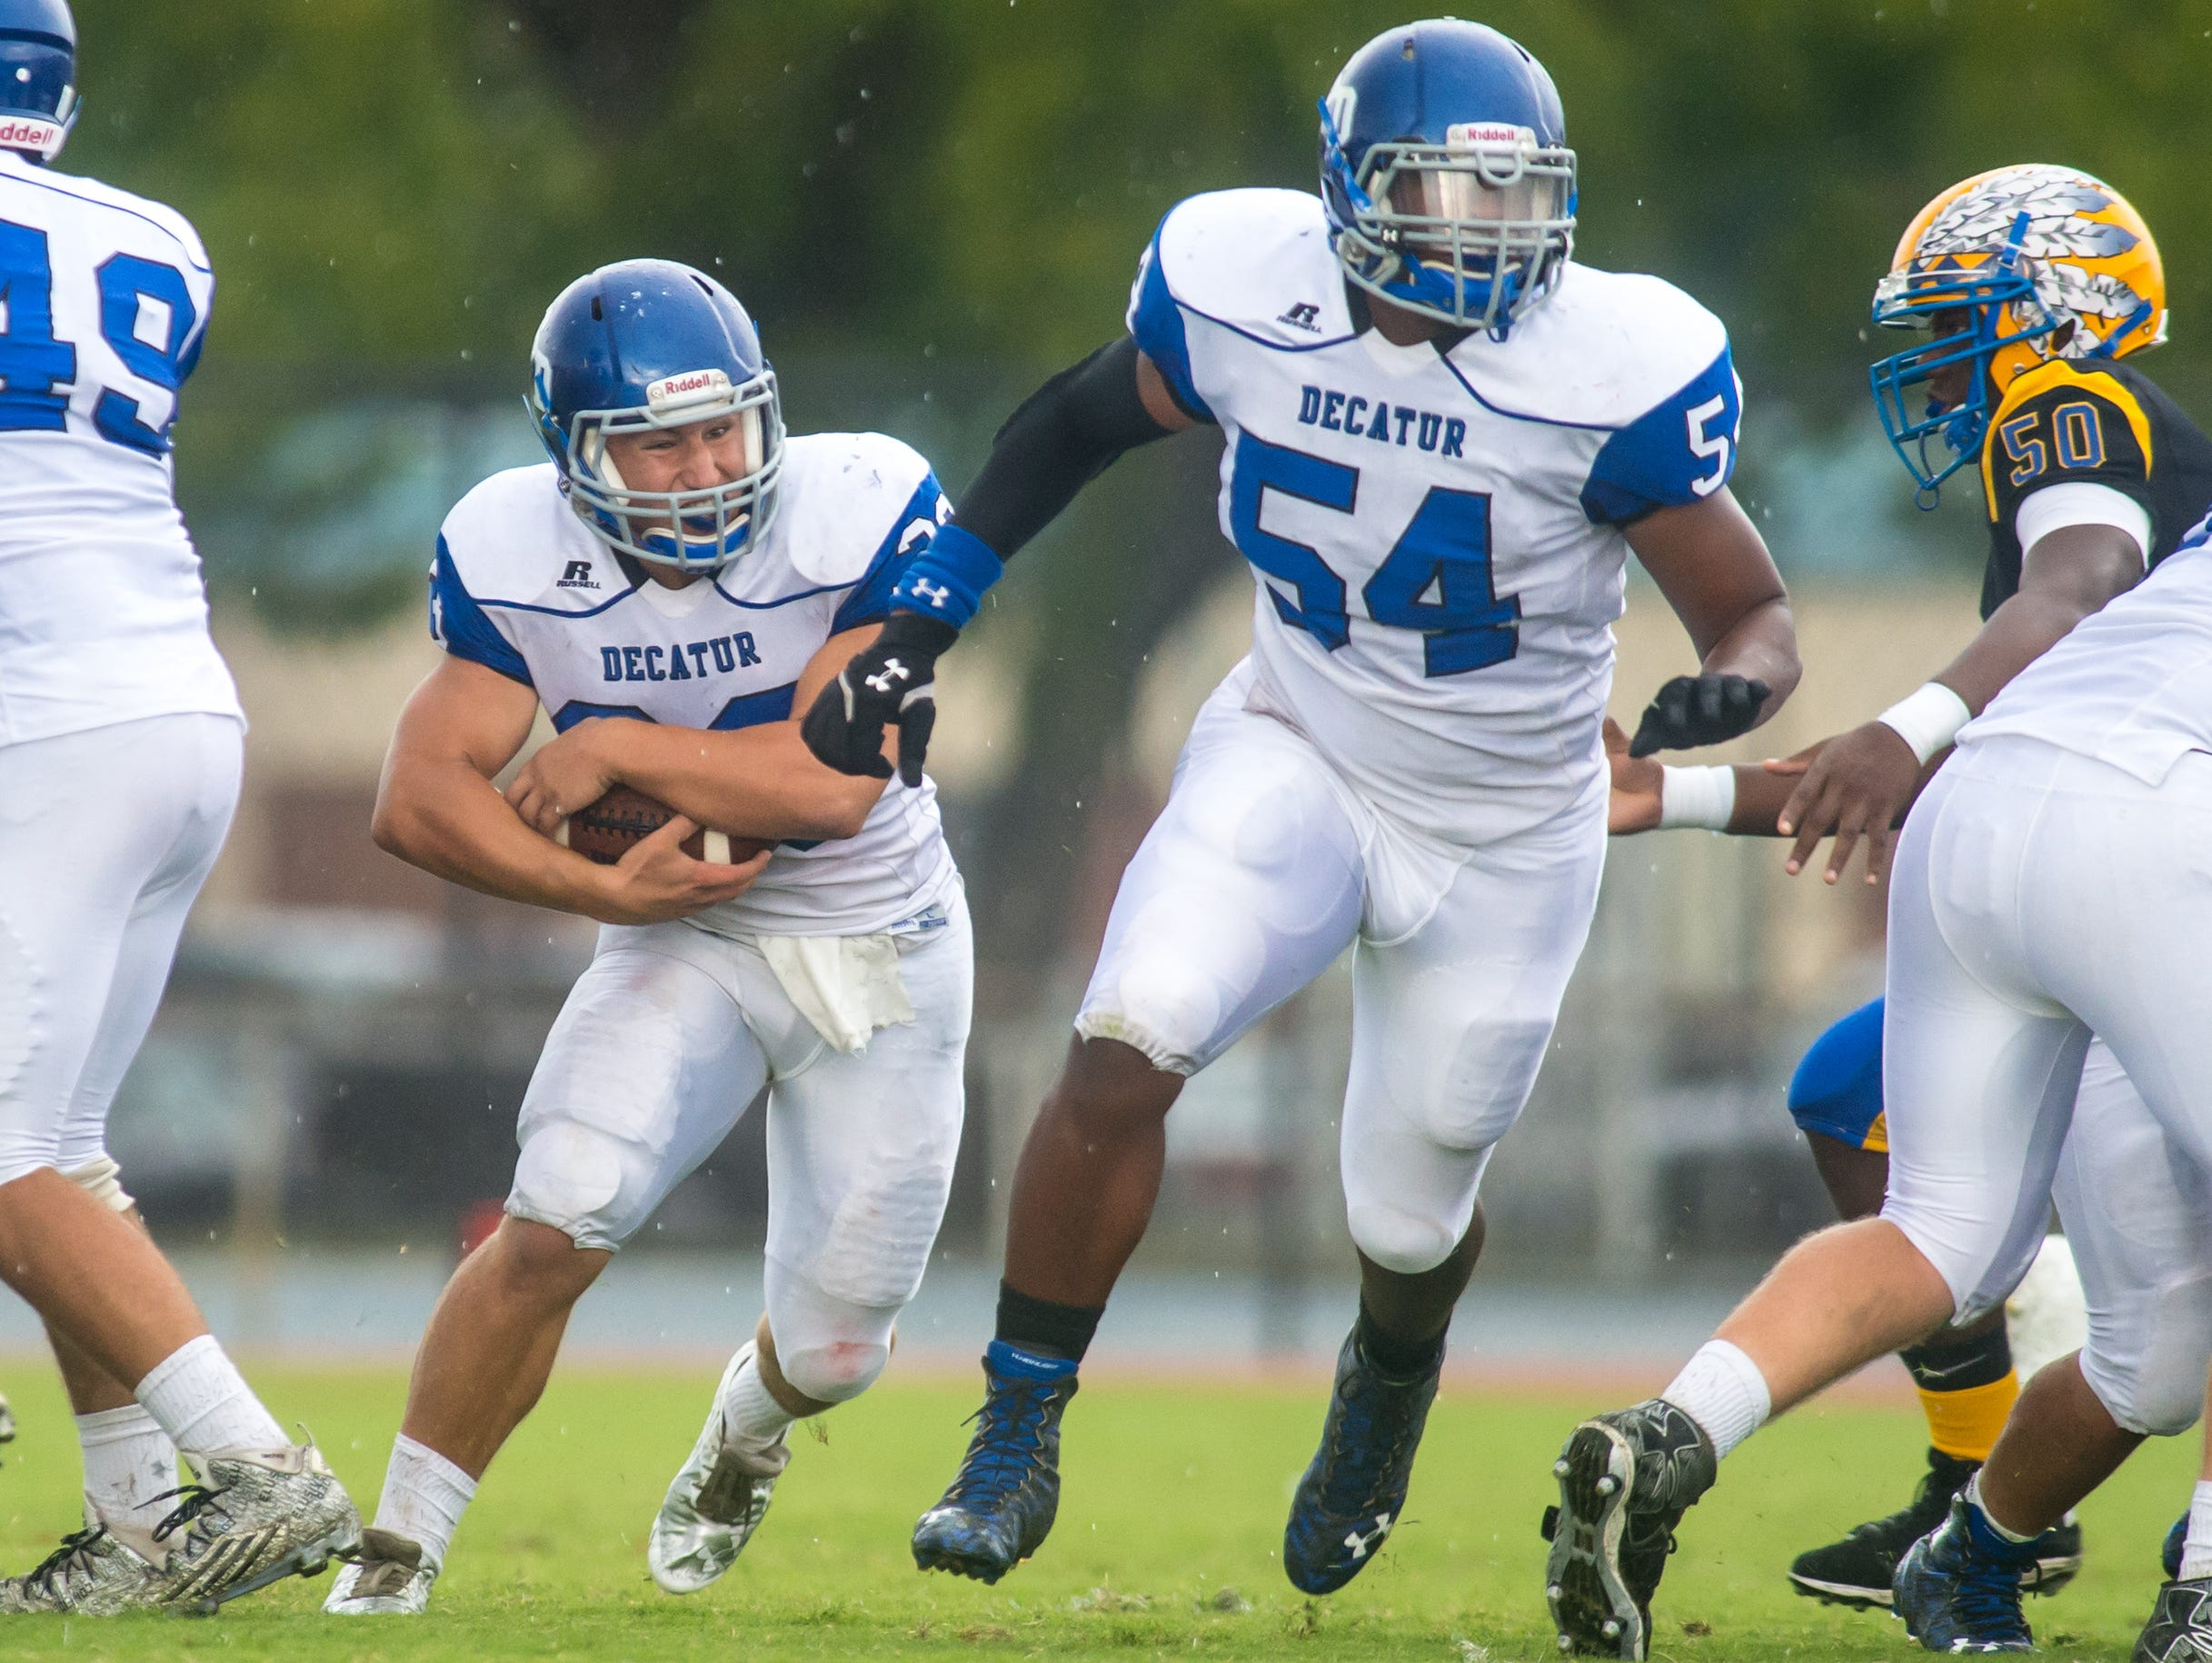 Stephen Decatur left tackle Ernest Shockley (54) clears a hole for running back Dryden Brous (33) against Wicomico High on Saturday afternoon at Wicomico County Stadium.